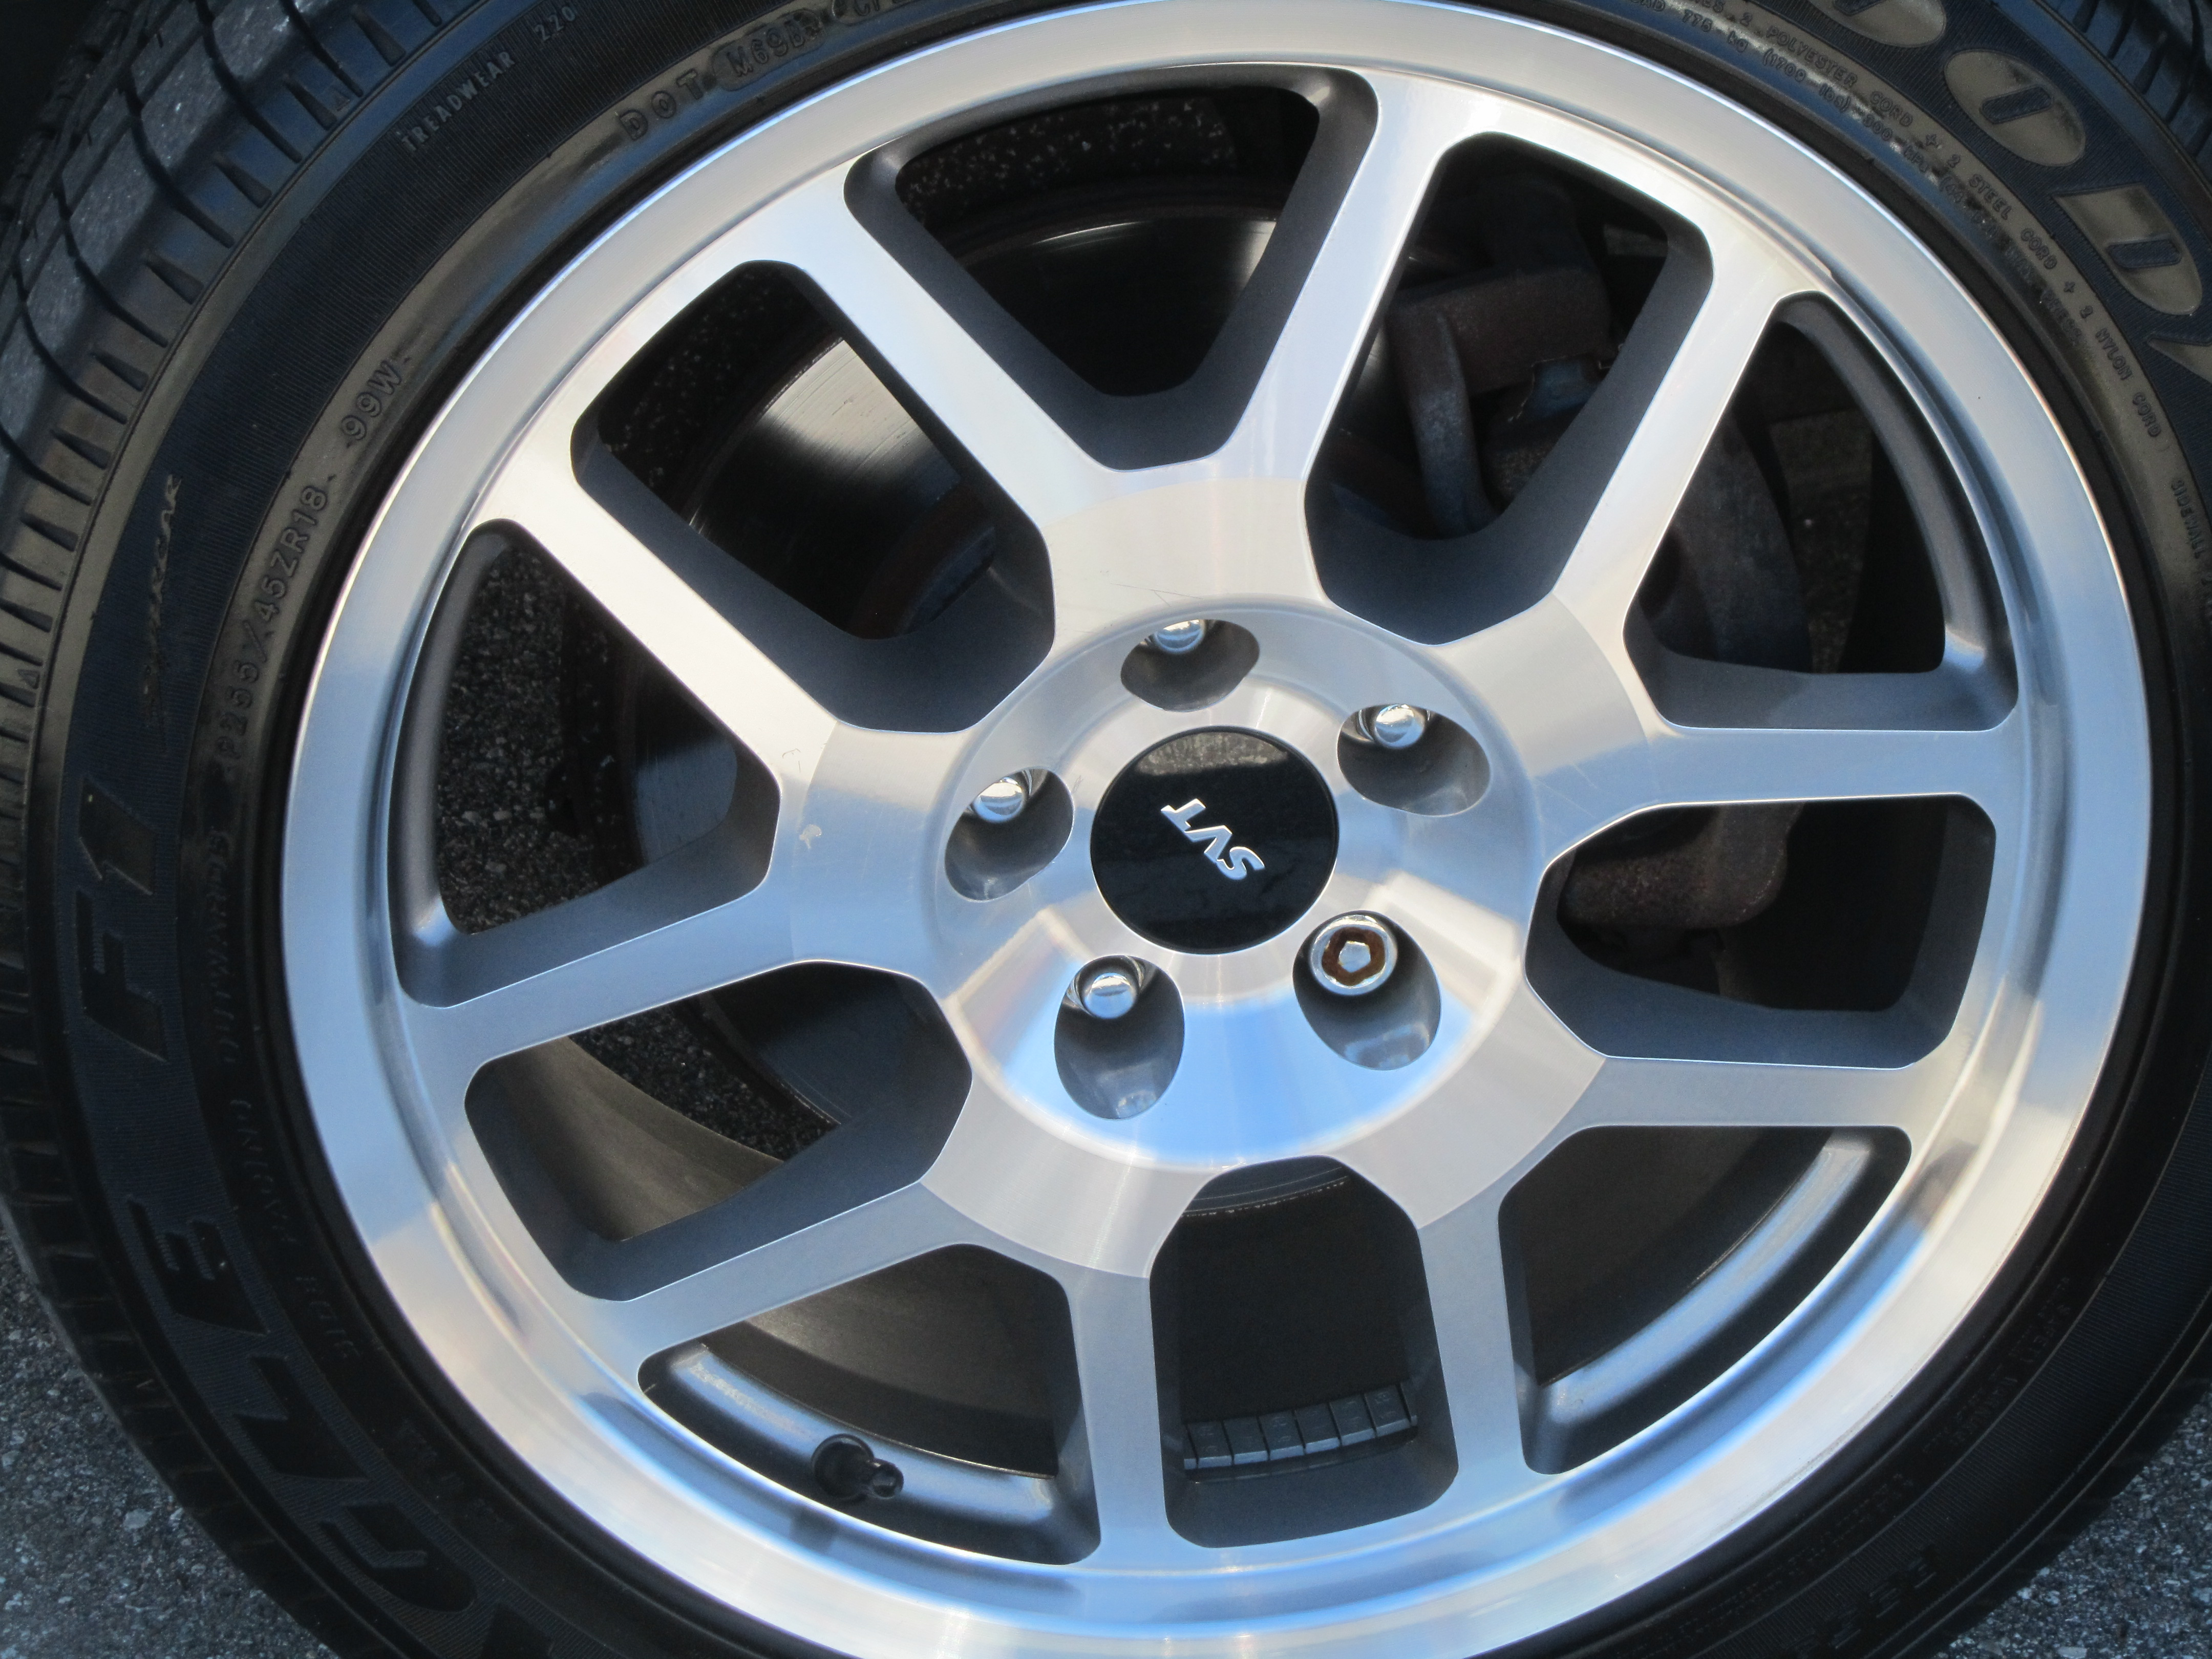 Ford LTD Crown Victoria wheels #4